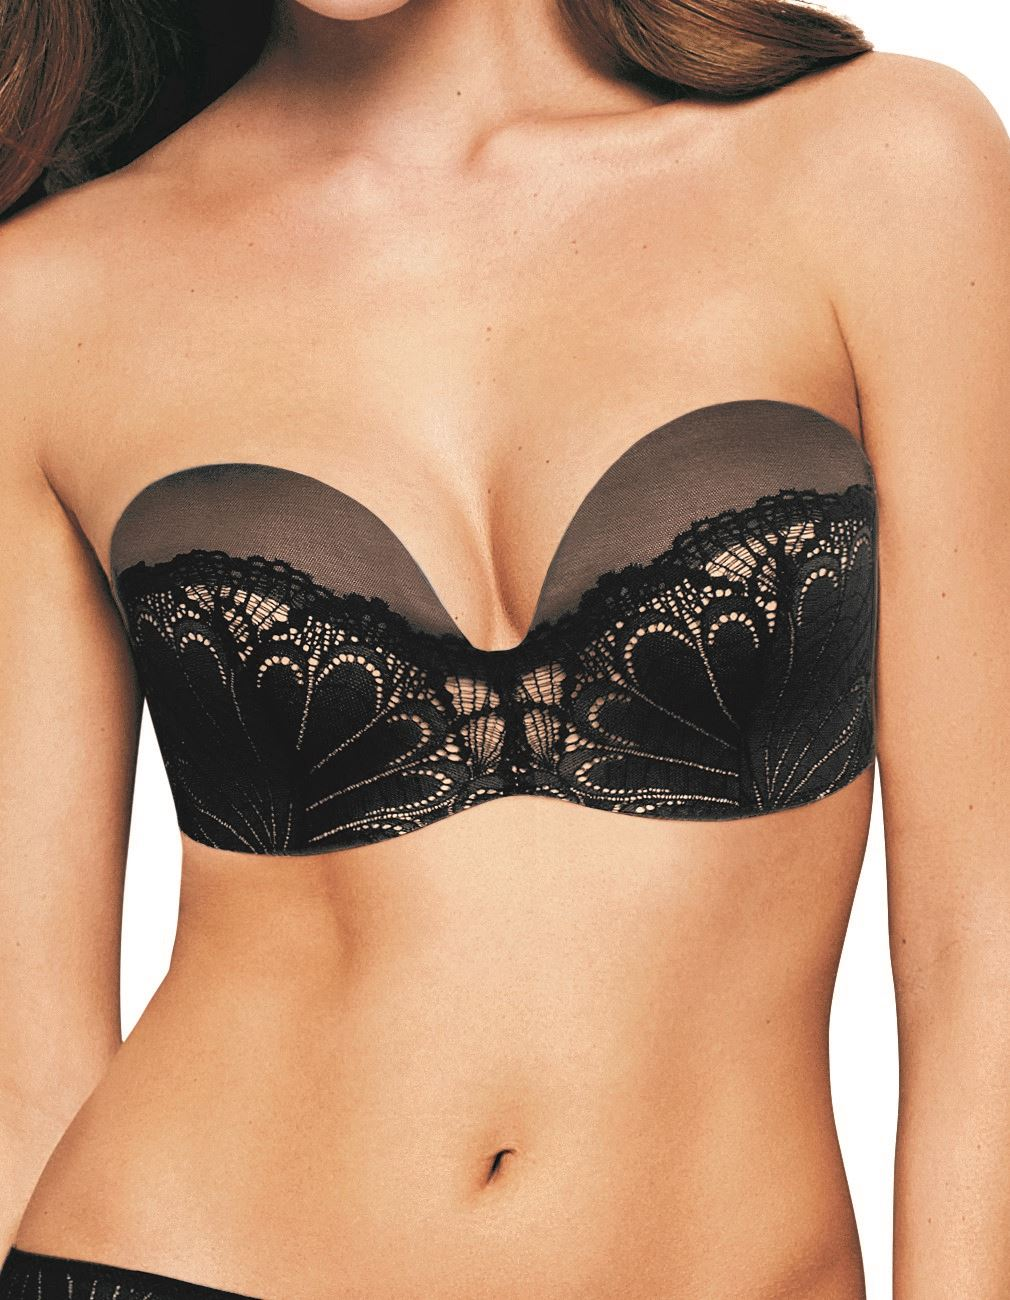 98d0ee4660e3 Wonderbra Ultimate Strapless Lace Refined Glamour Bra W031u Black 32 D.  About this product. Picture 1 of 2; Picture 2 of 2